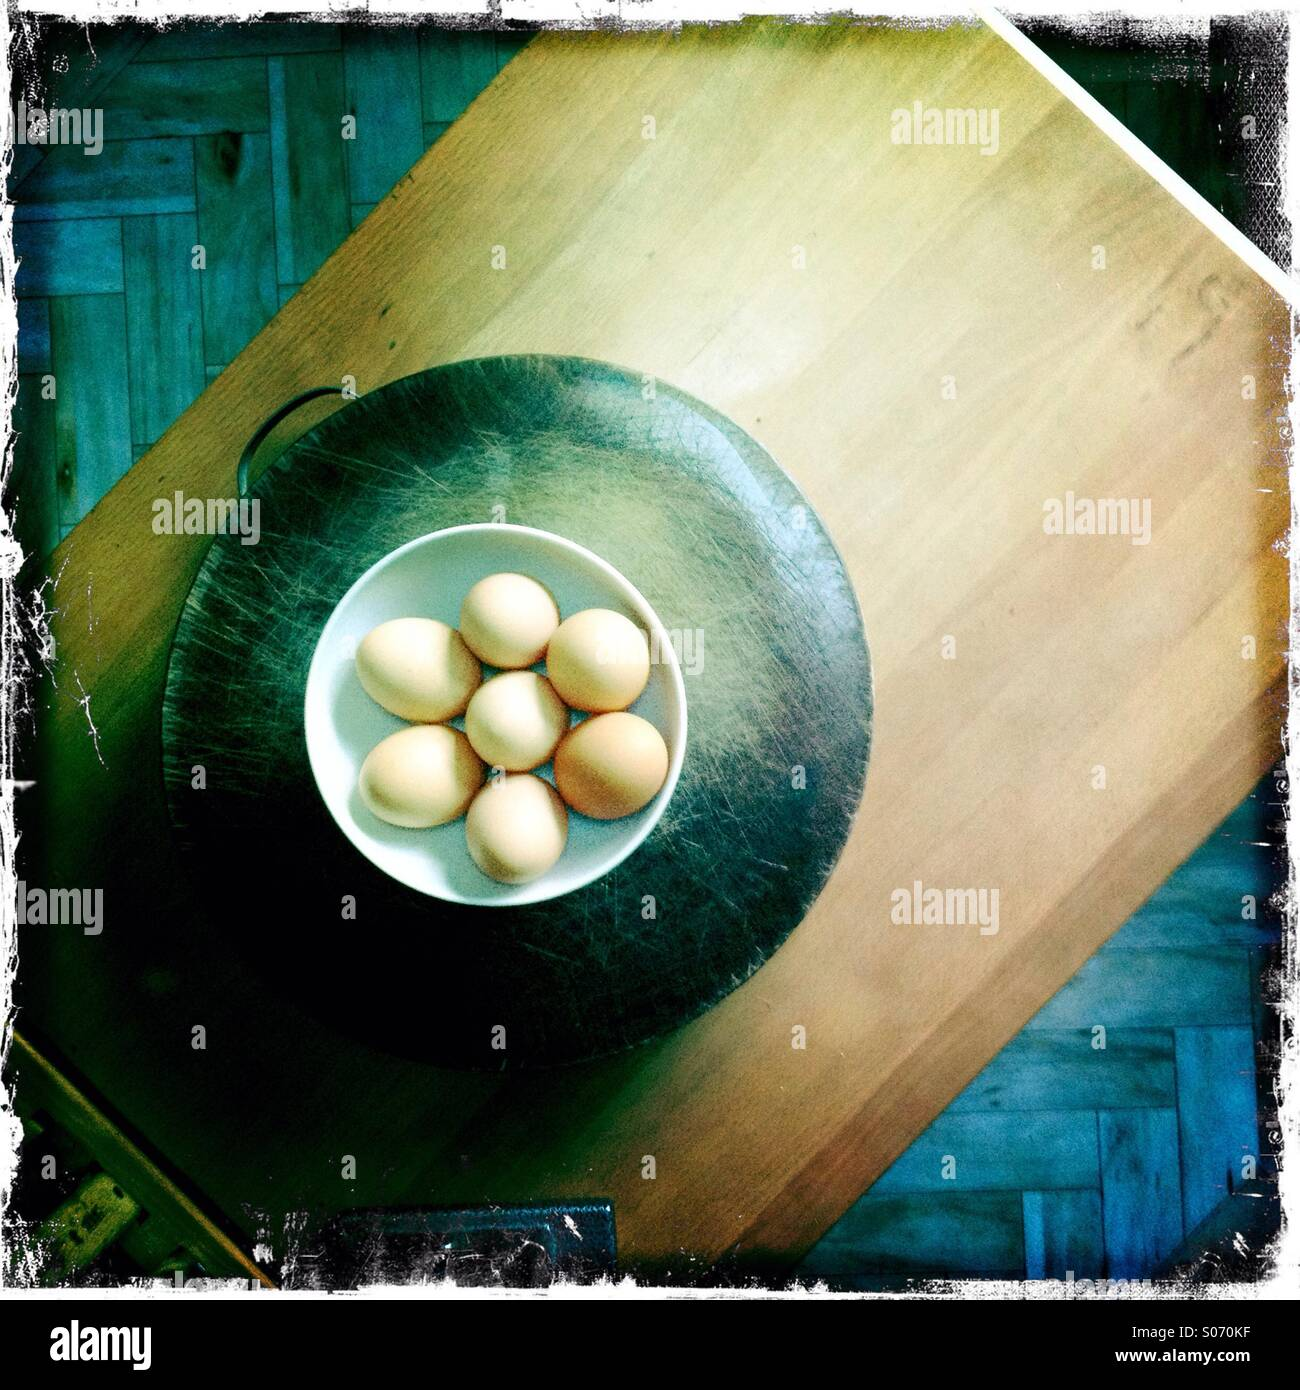 Wooden kitchen work surfaces with eggs Stock Photo